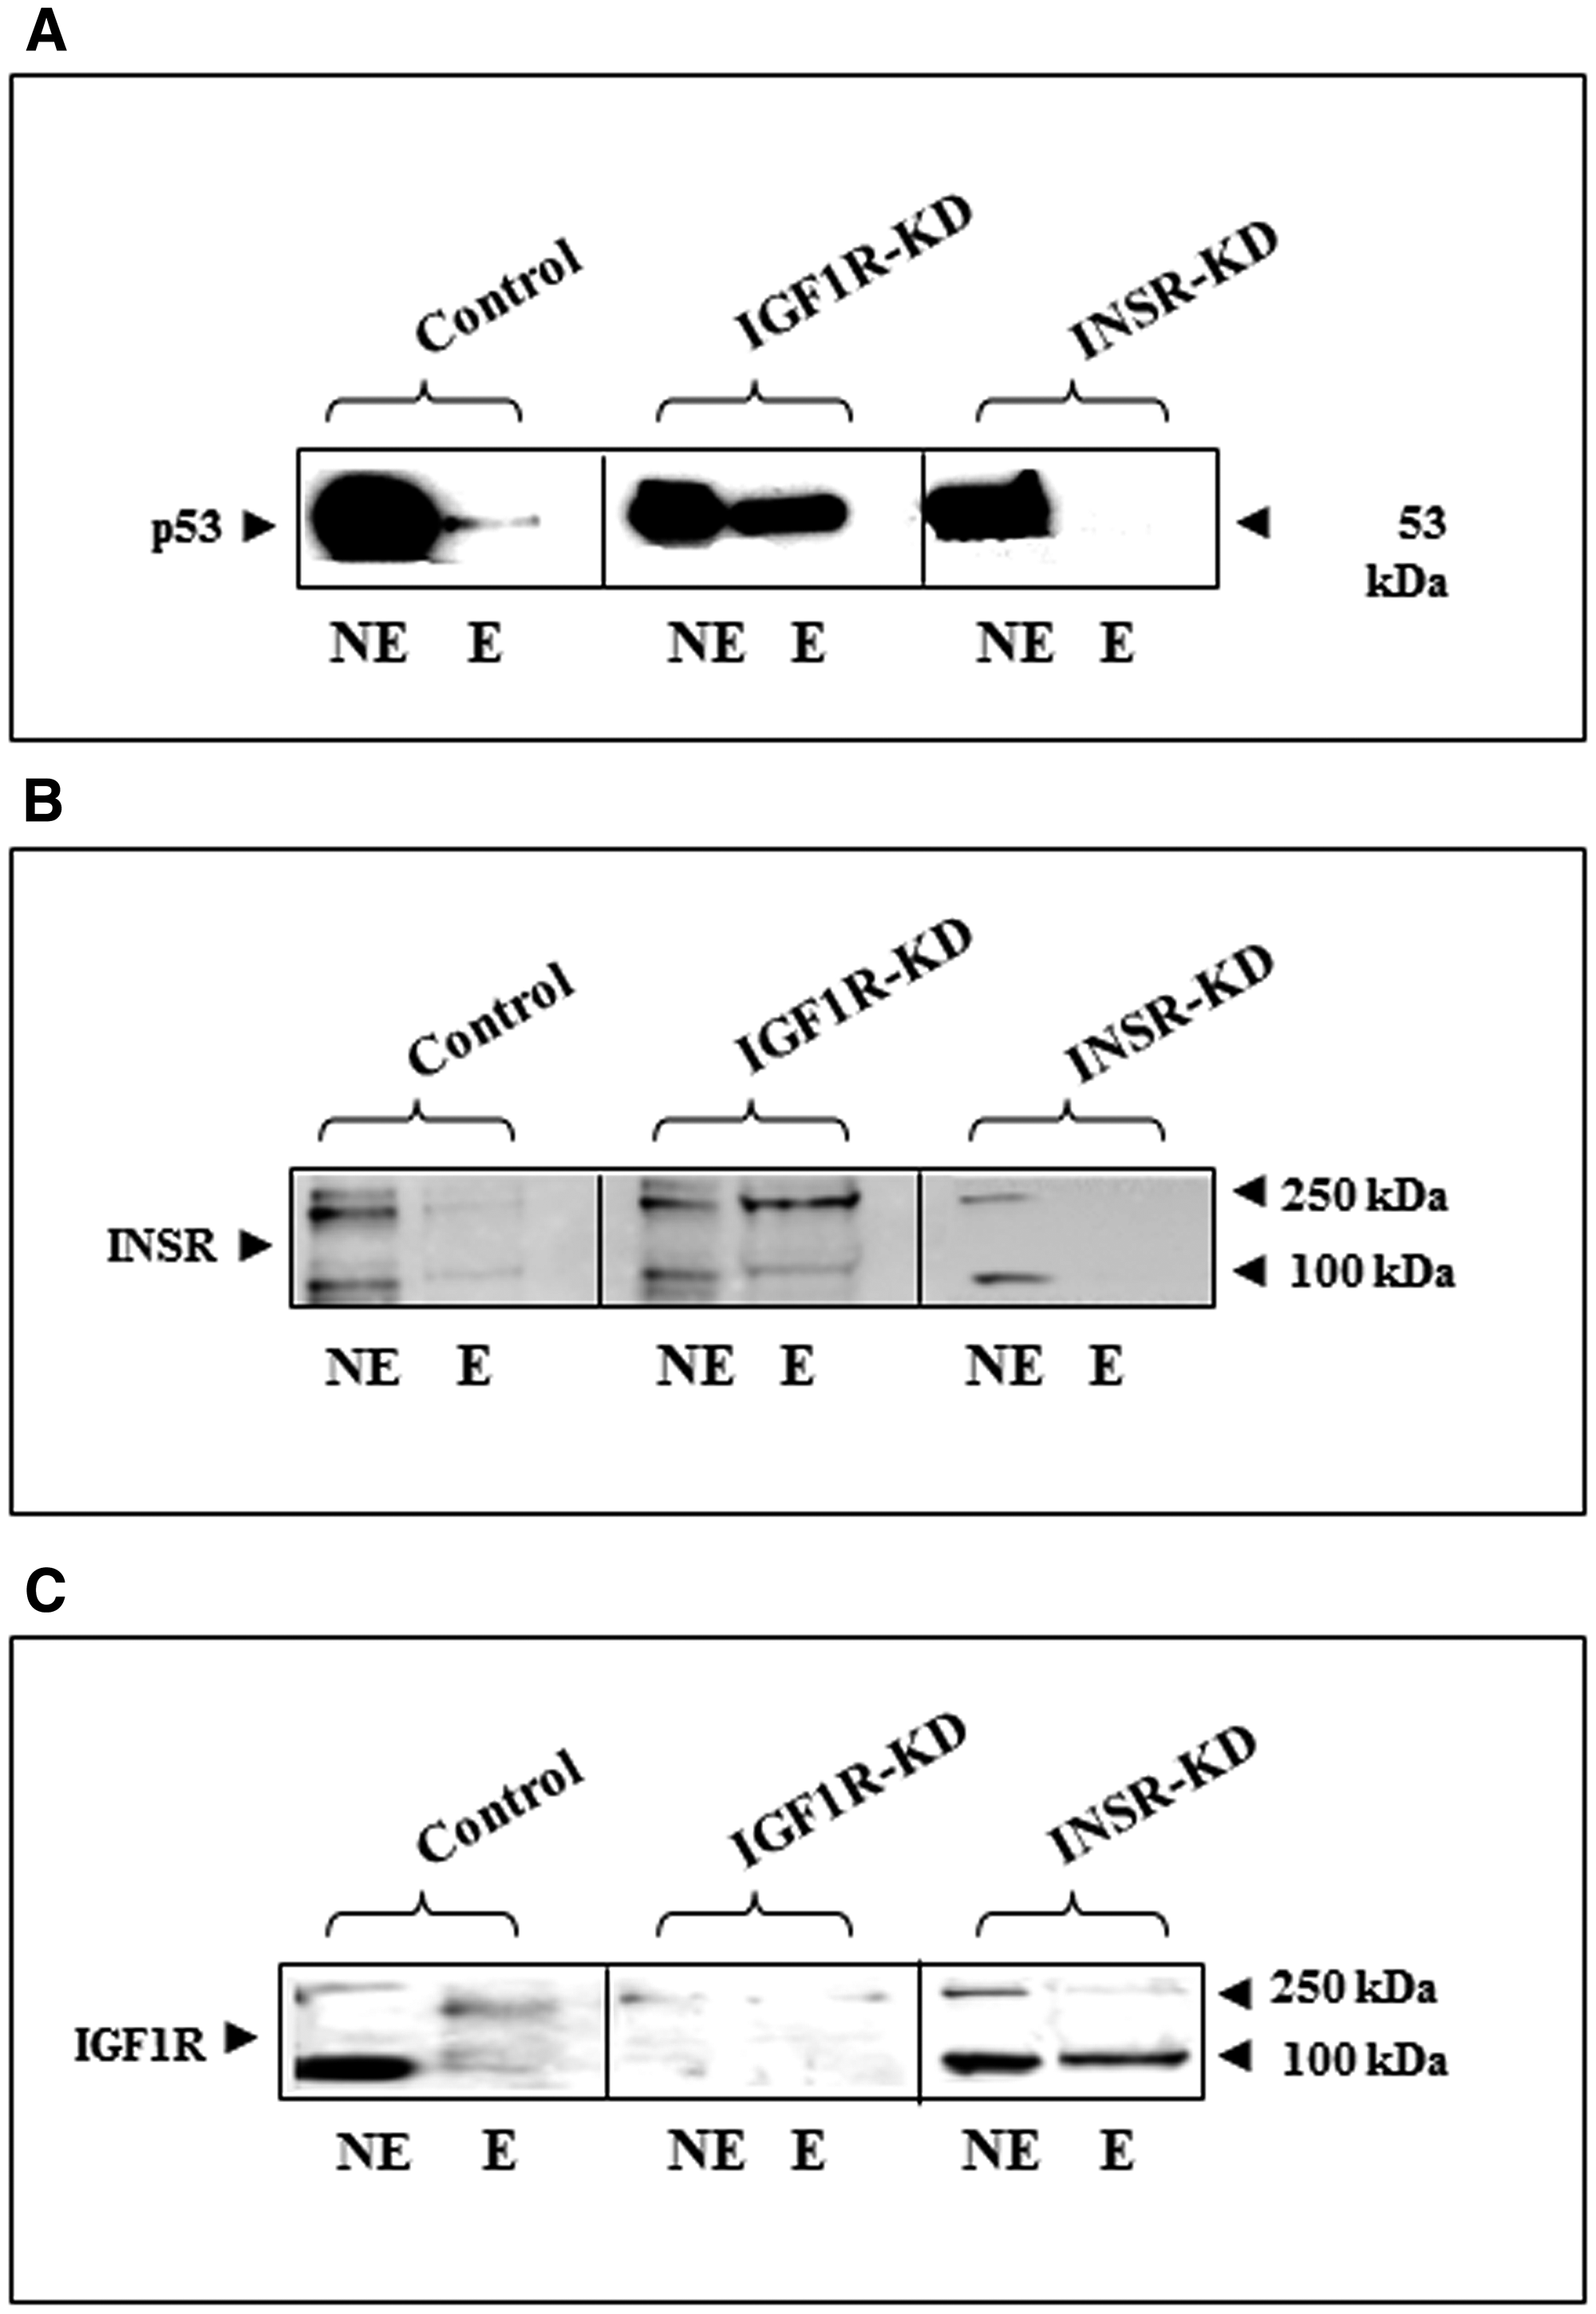 Physical interactions between p53, INSR/IGF1R and the INSR promoter region.